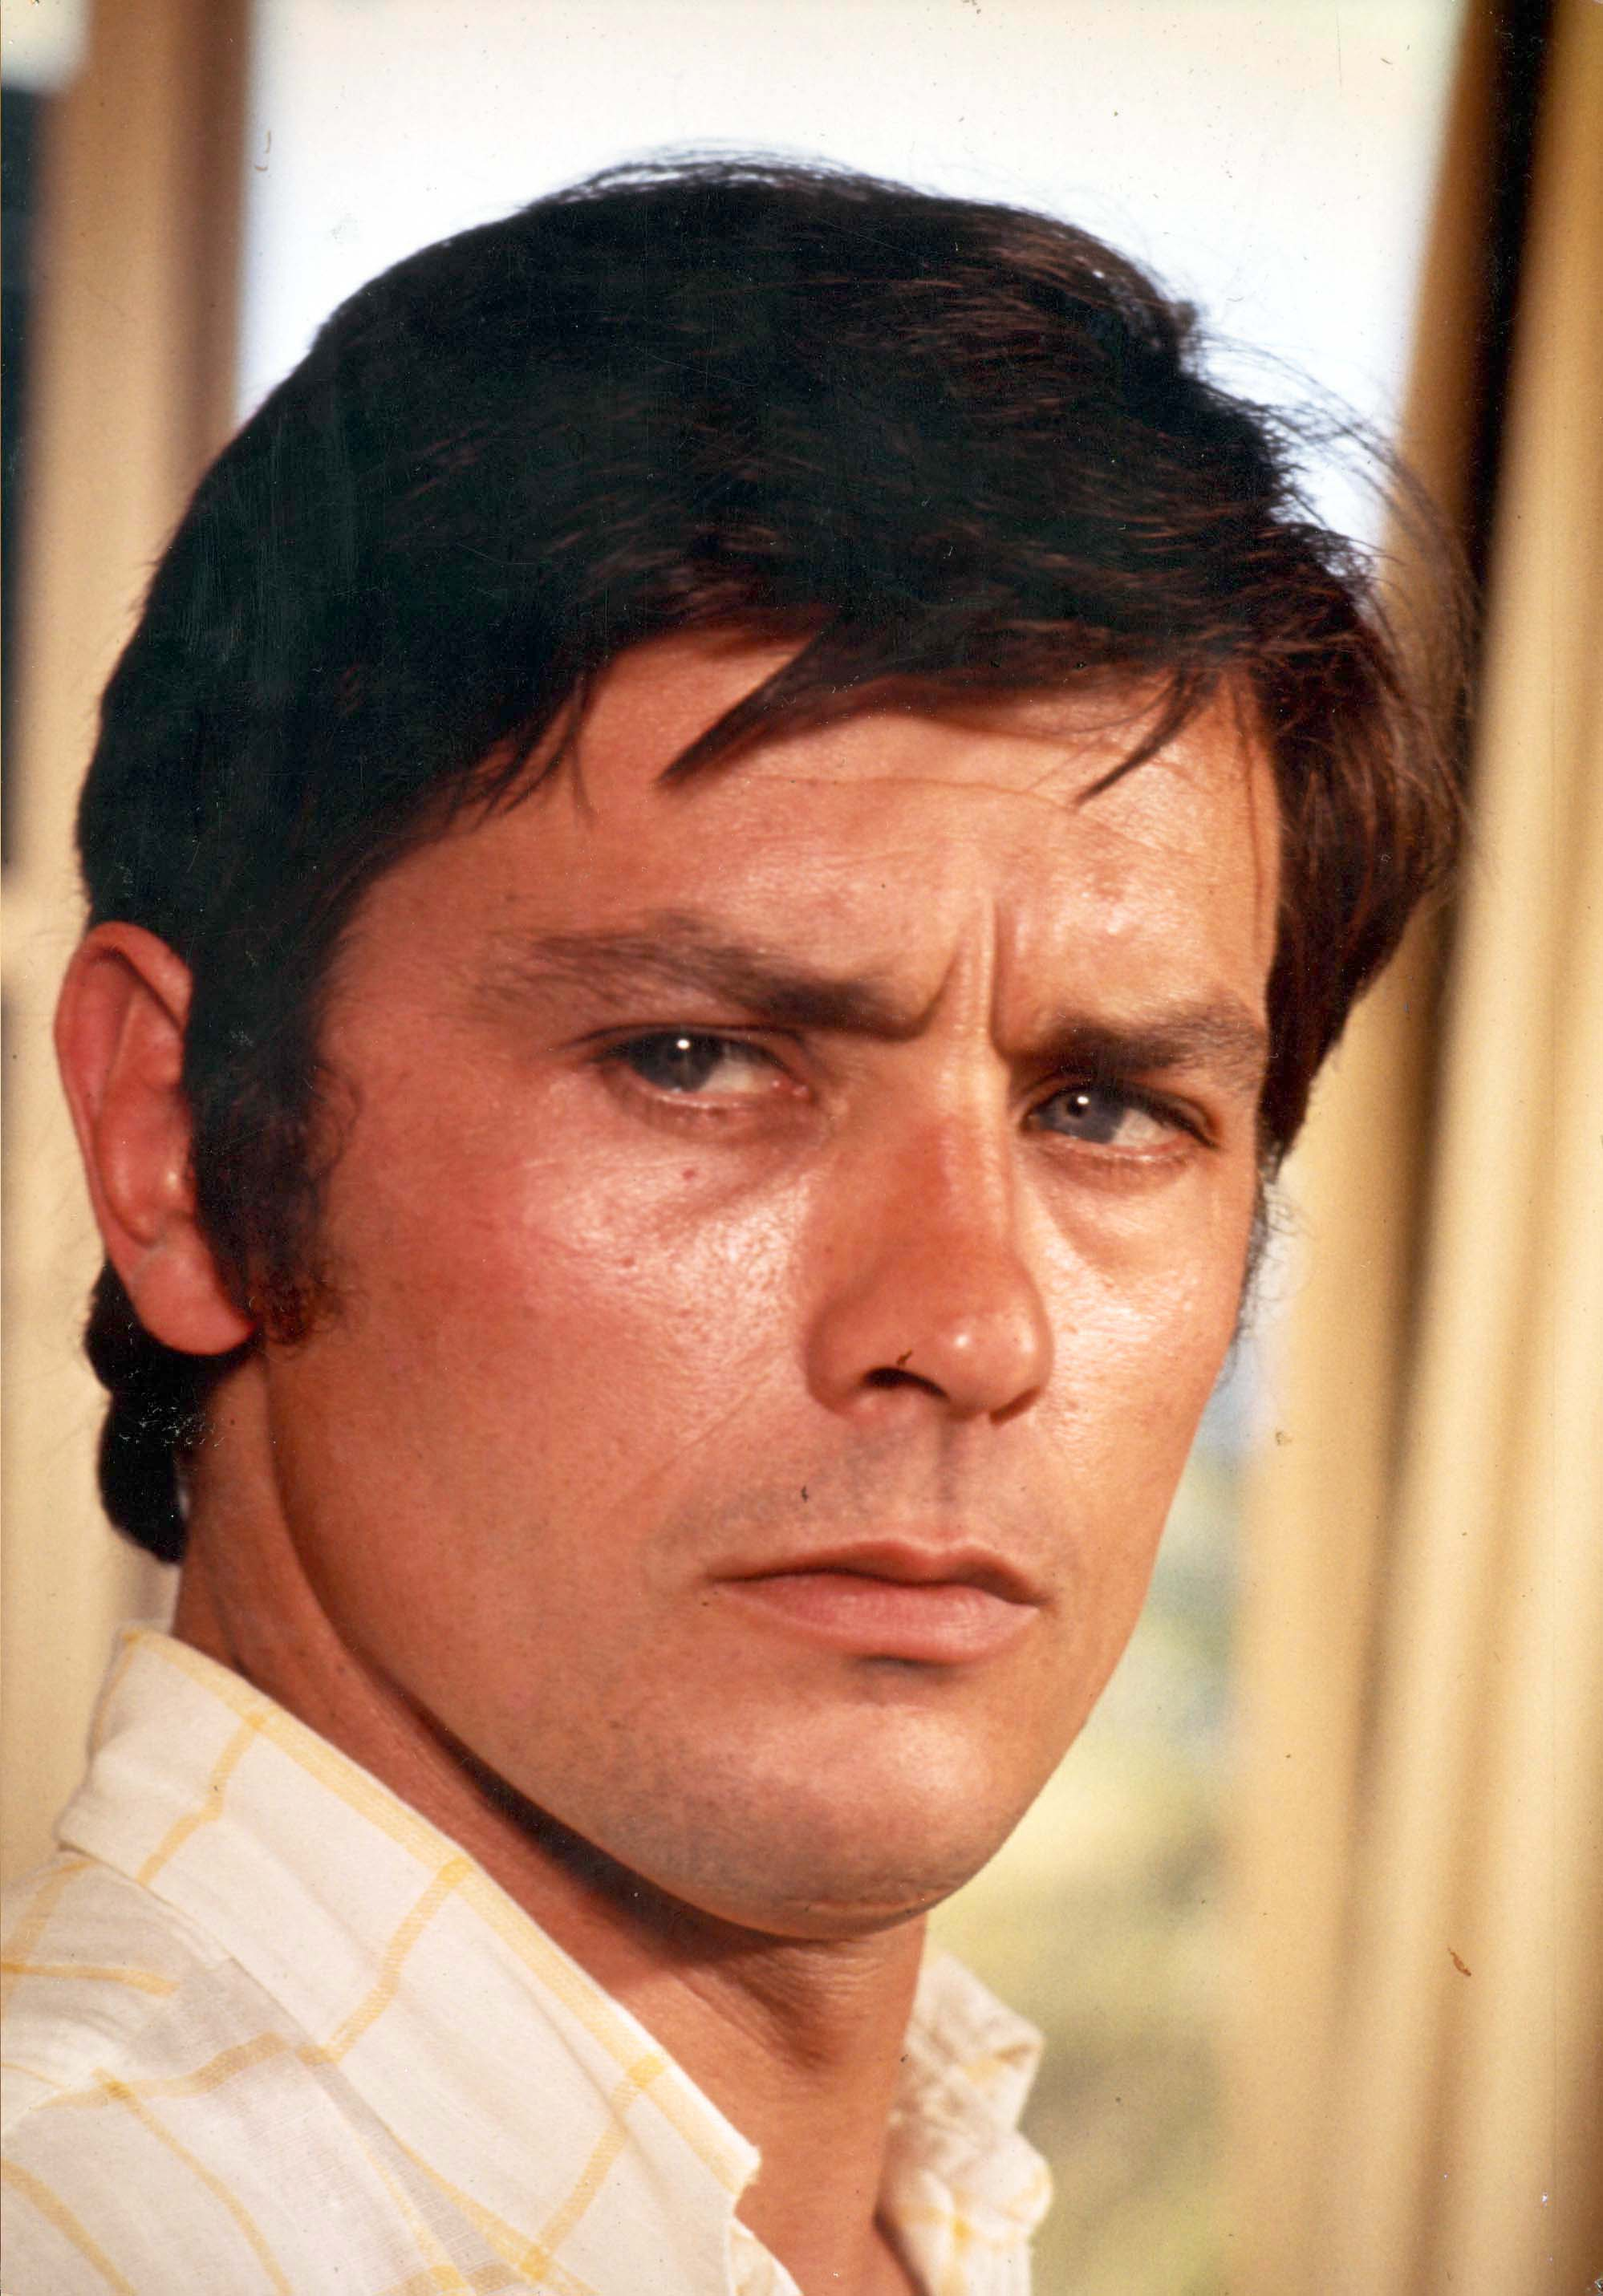 Alain deloin superfuckers 2